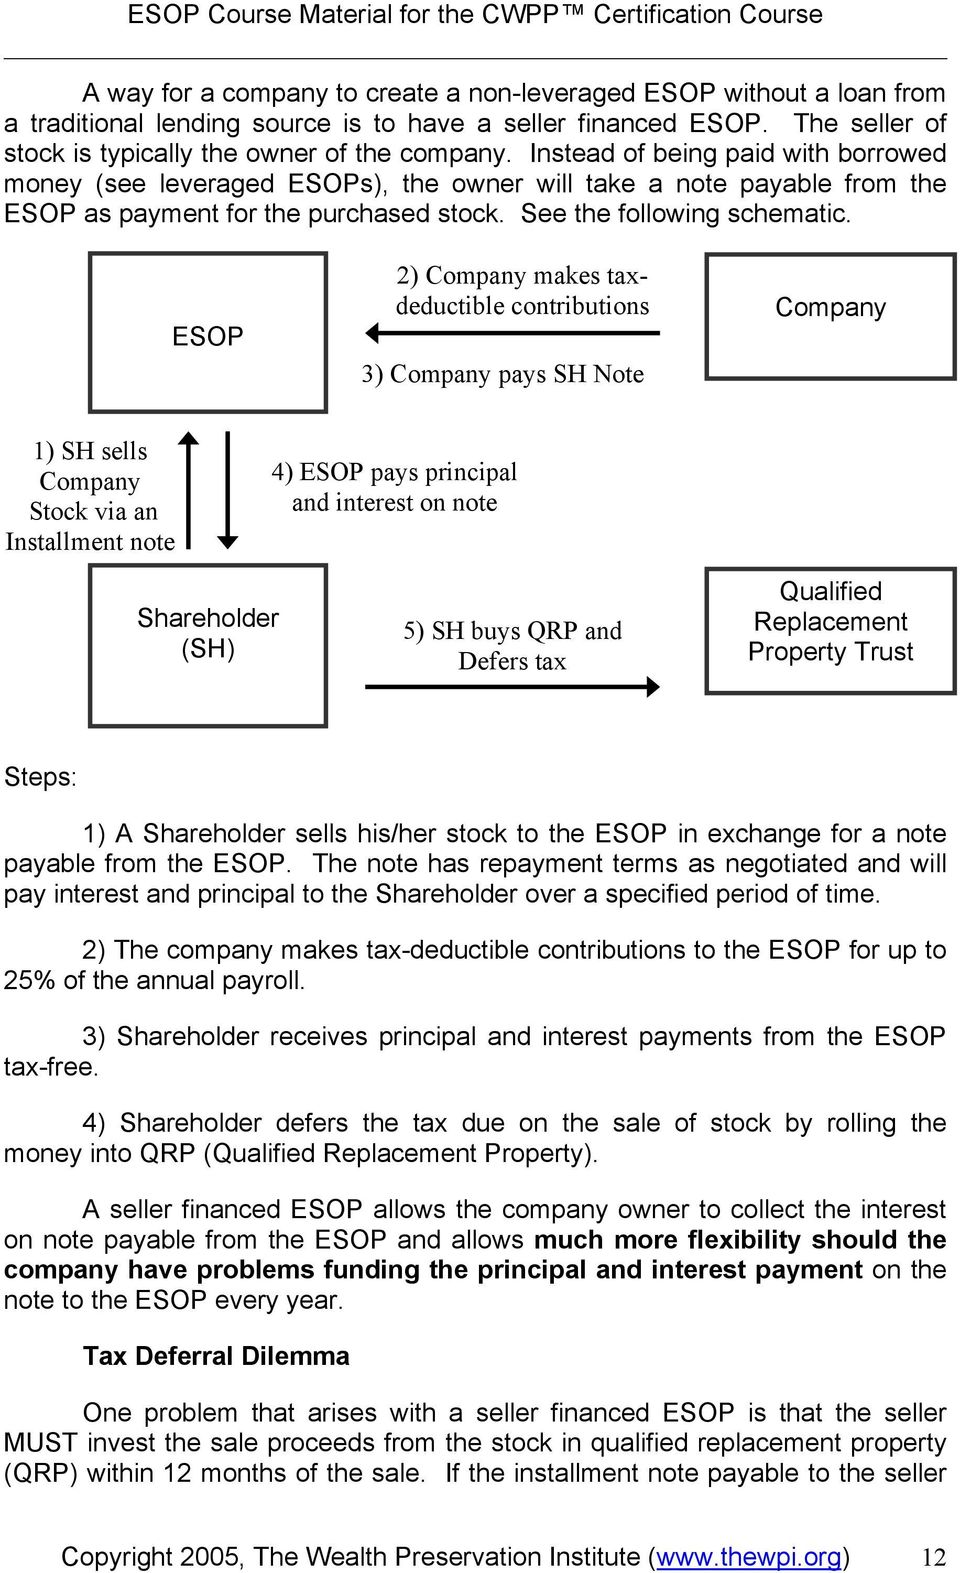 ESOP 2) Company makes taxdeductible contributions 3) Company pays SH Note Company 1) SH sells Company Stock via an Installment note 4) ESOP pays principal and interest on note Shareholder (SH) 5) SH